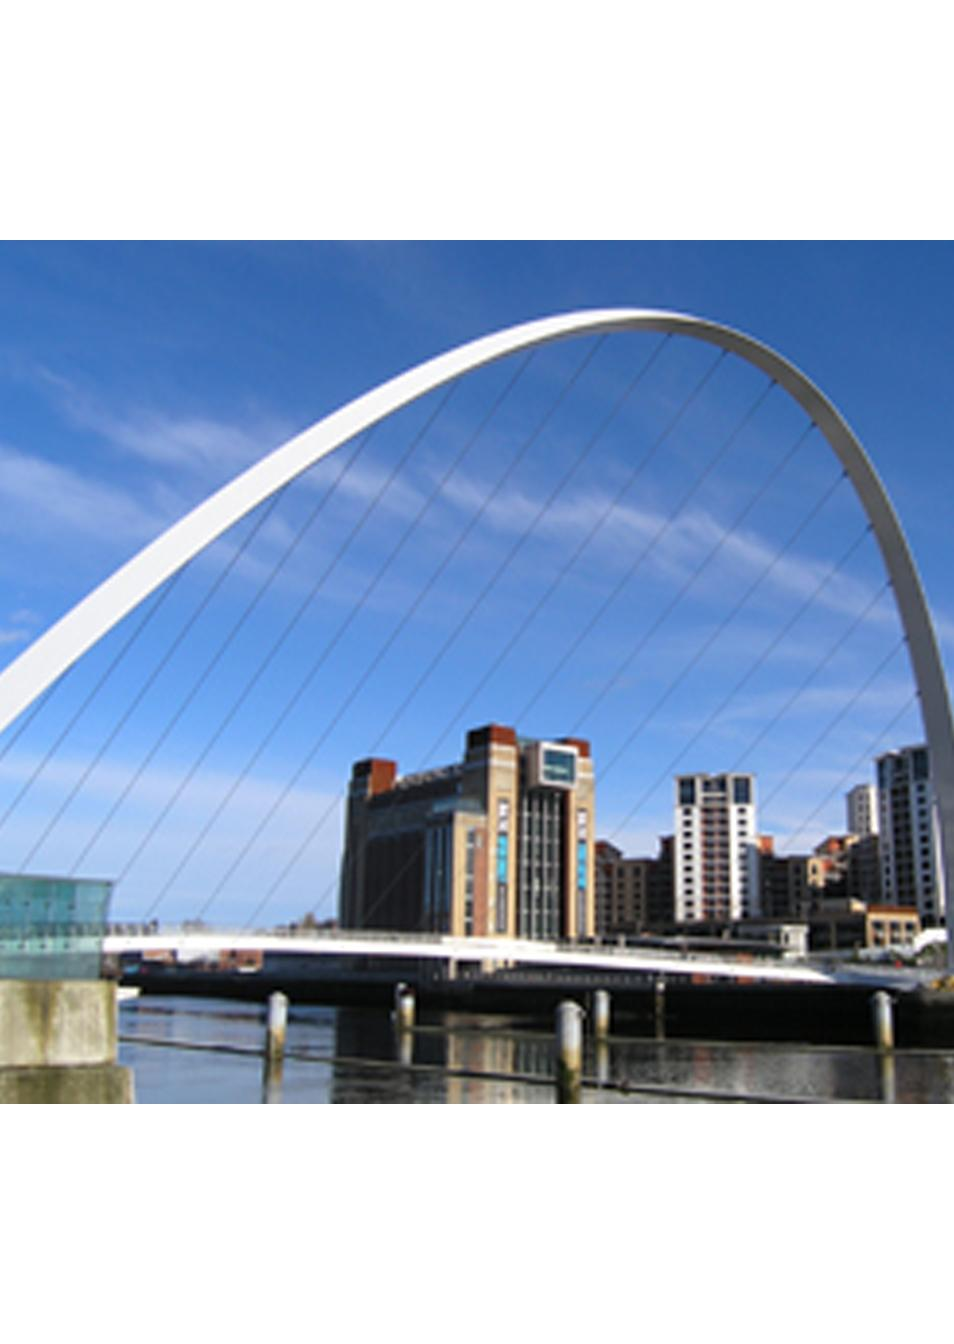 GGB Bearings in Gateshead Millennium Bridge pivot points